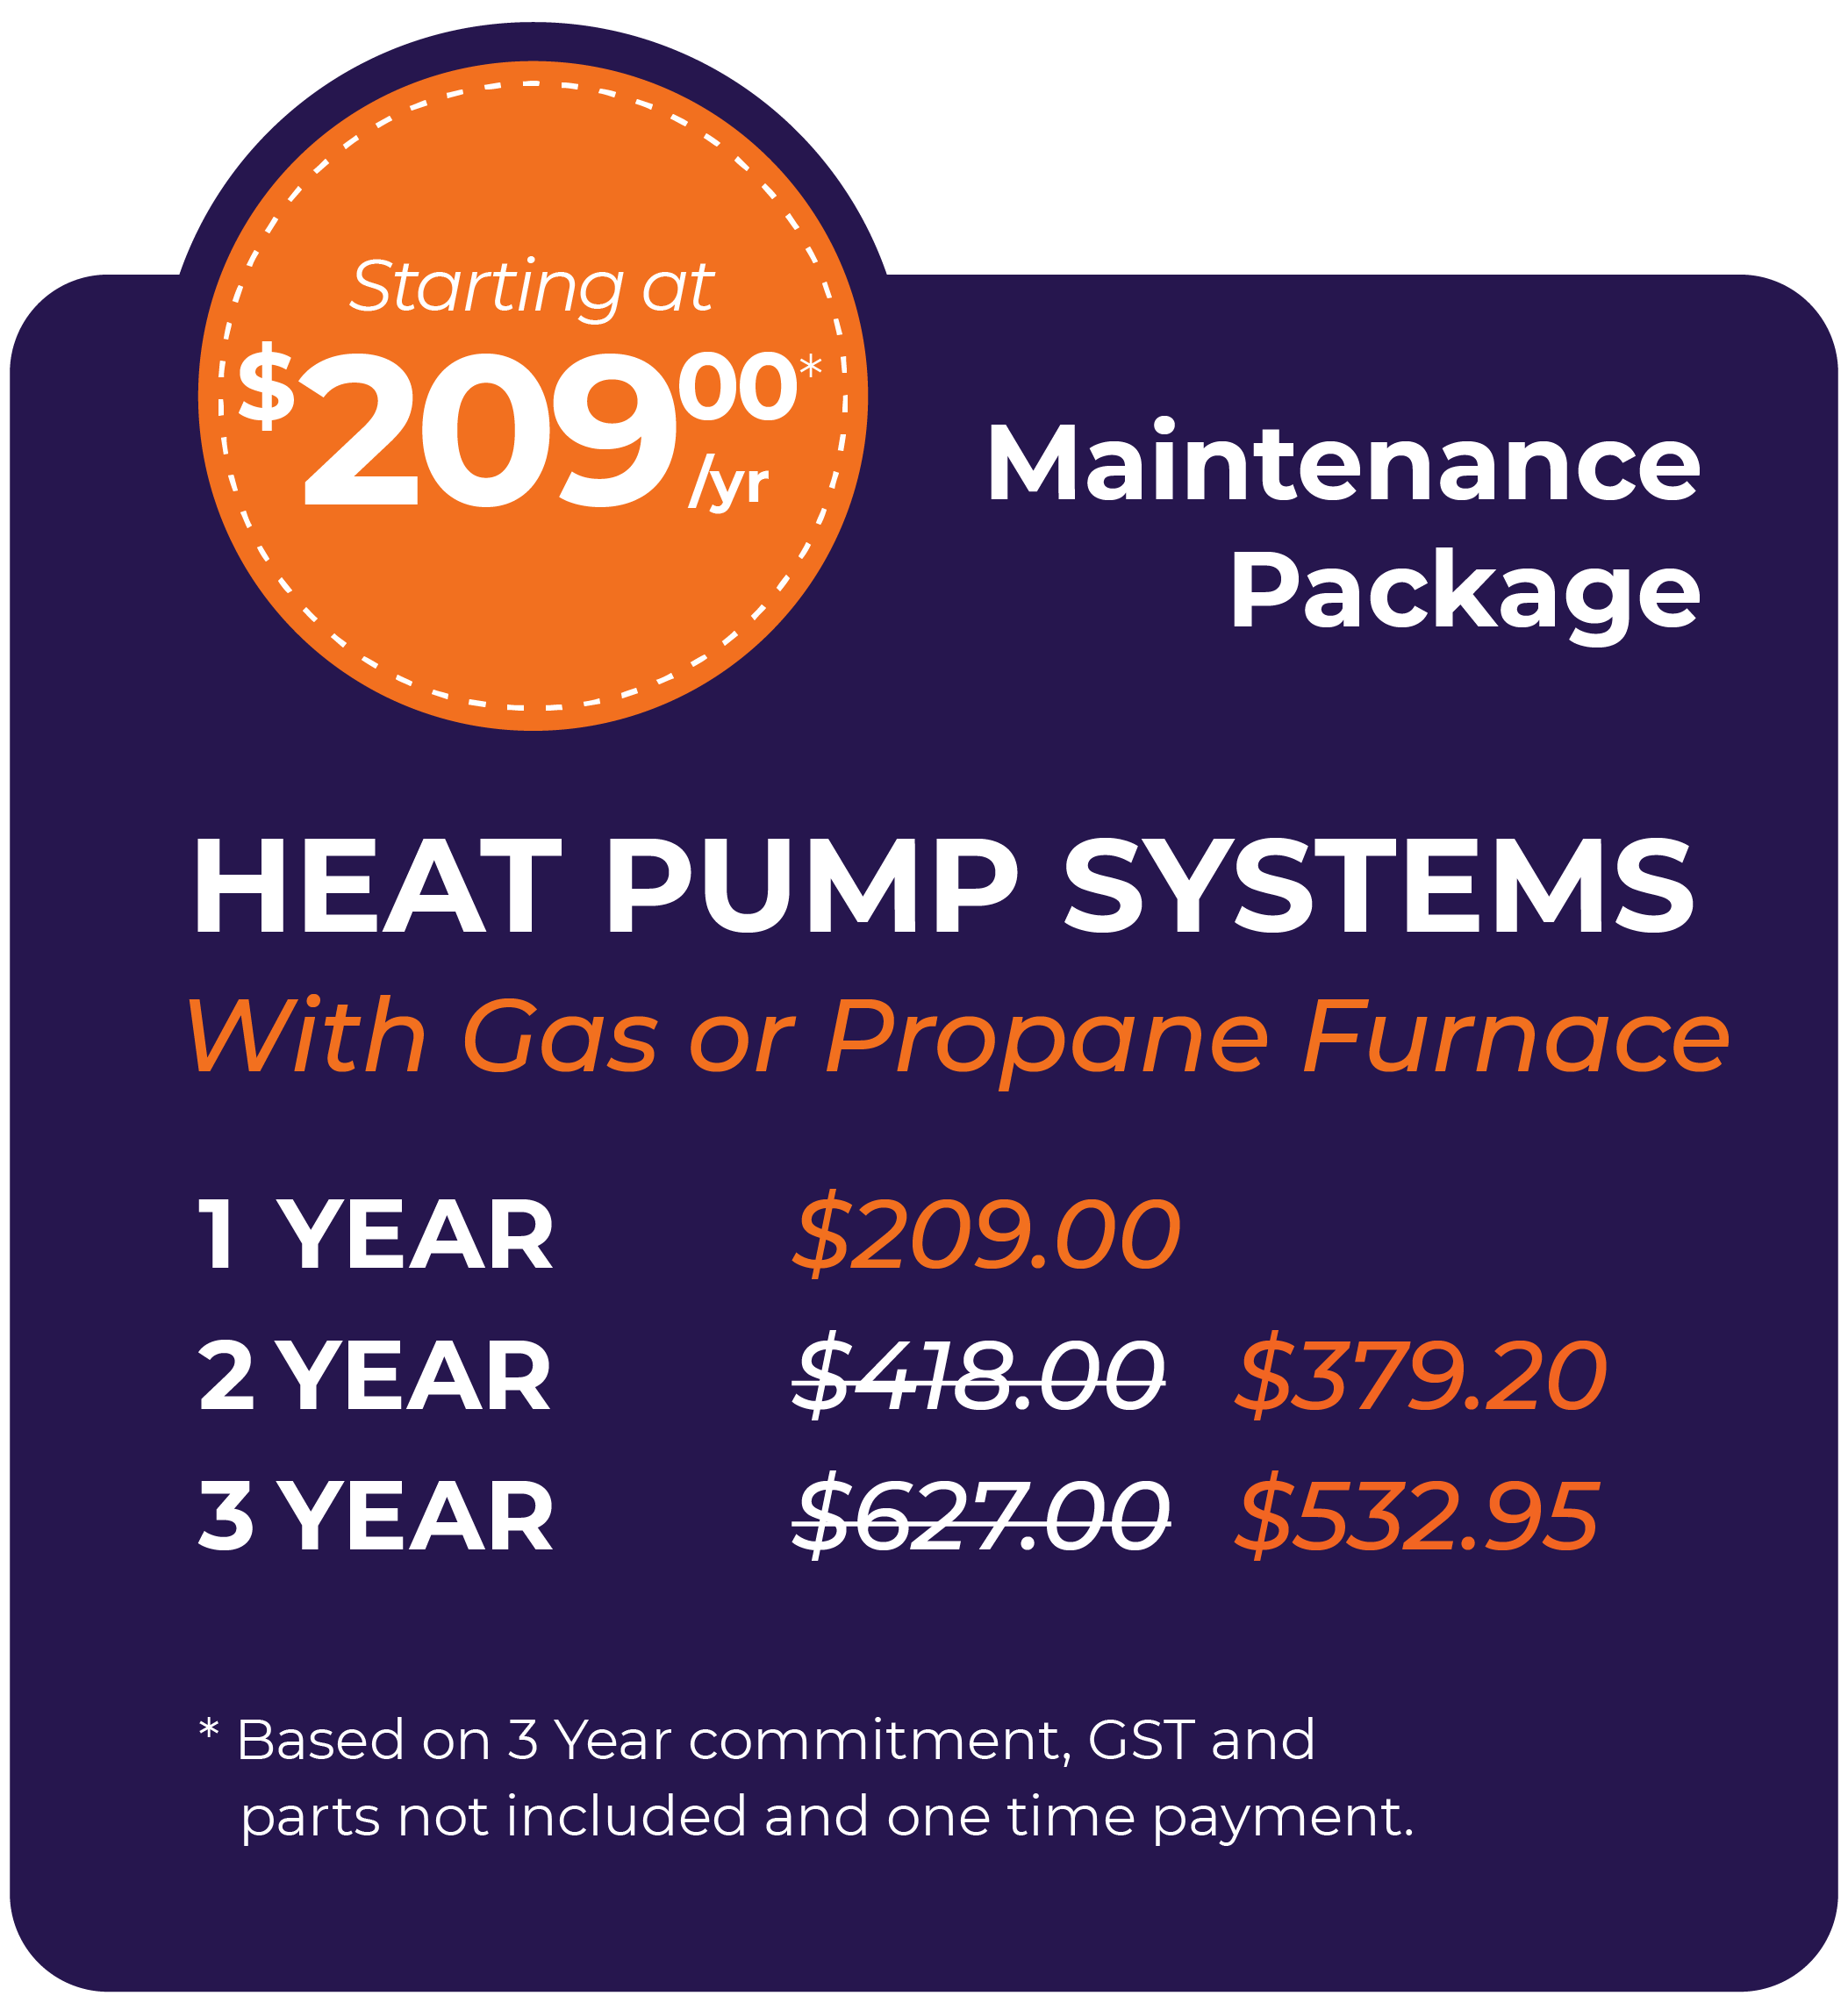 Heat Pump Systems with Gas or Propane Back-Up Maintenance Package